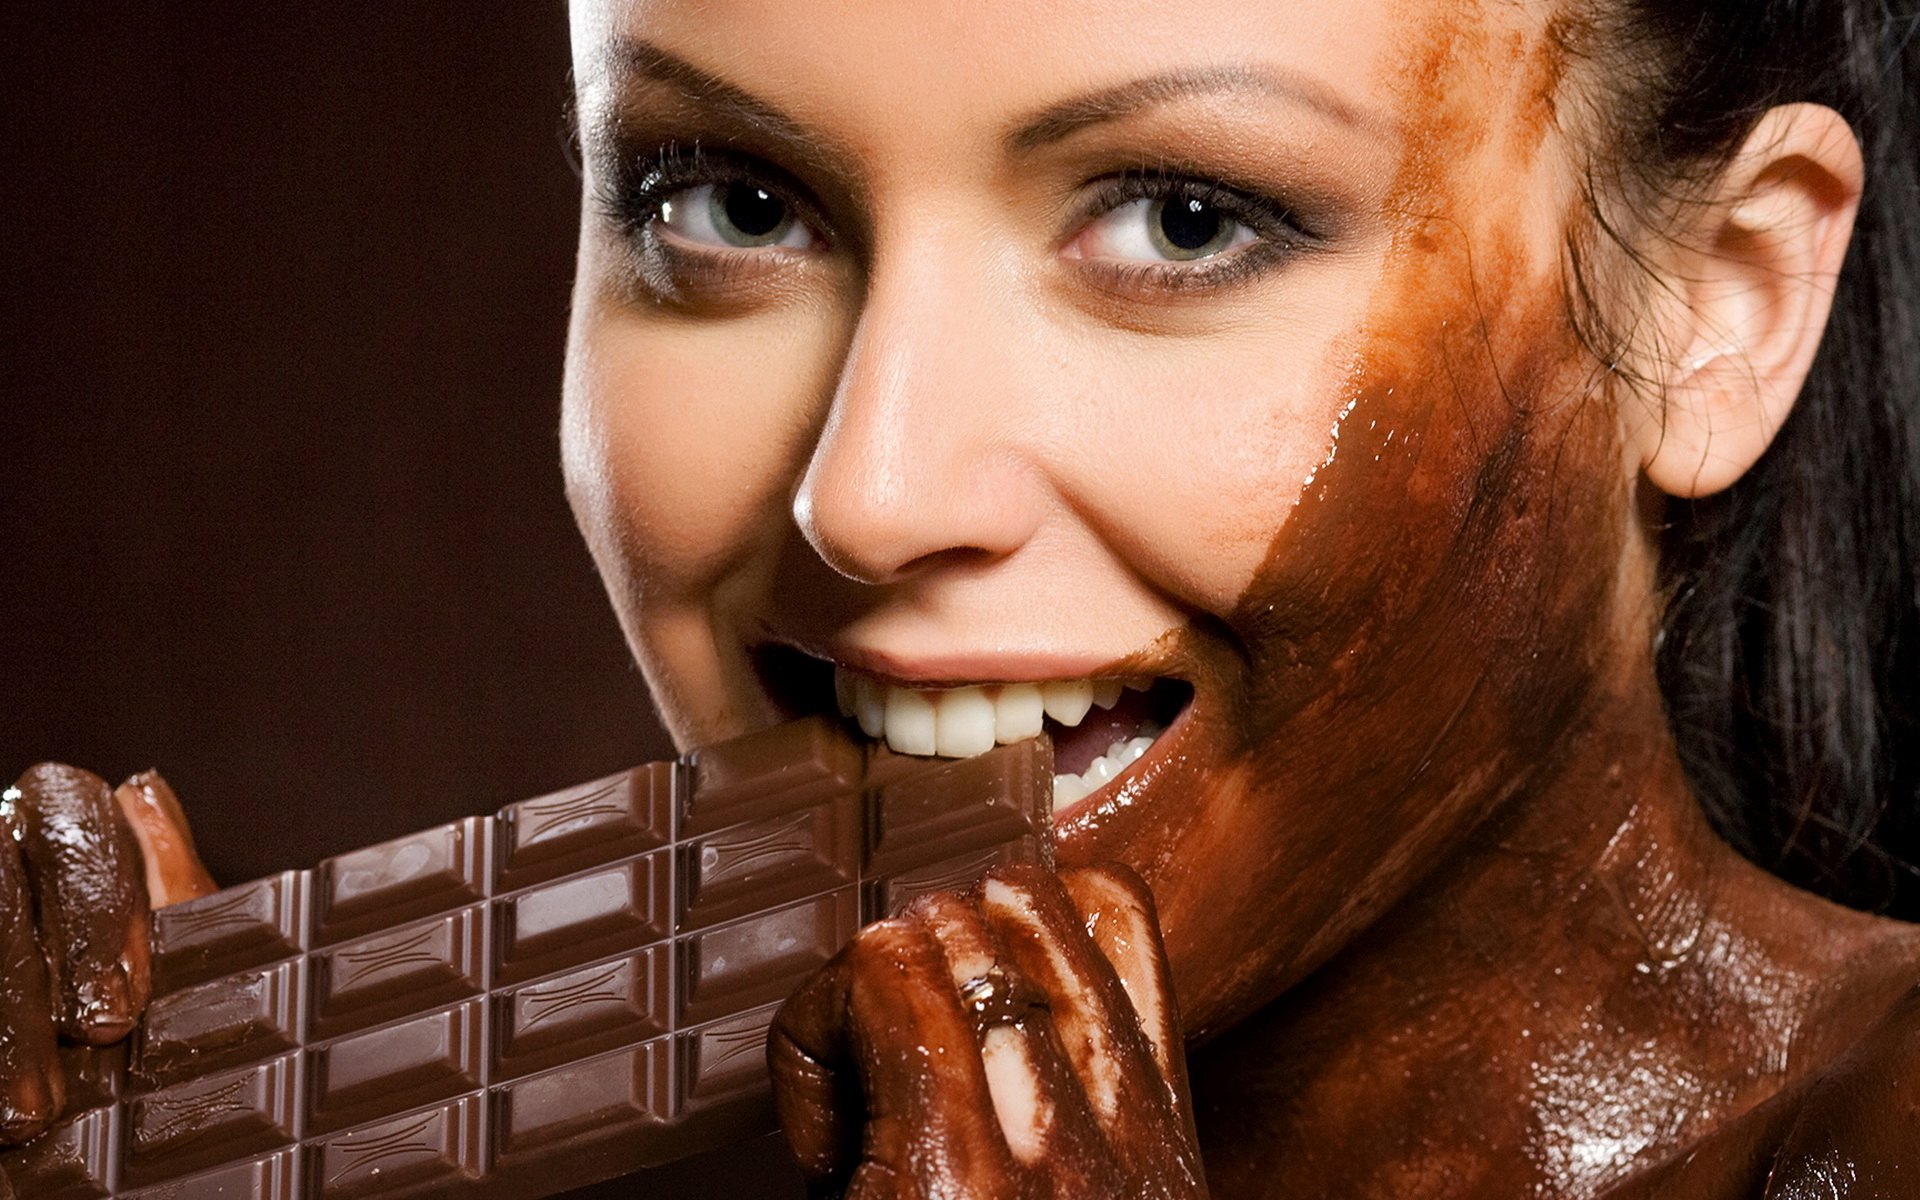 Girl_in_chocolate